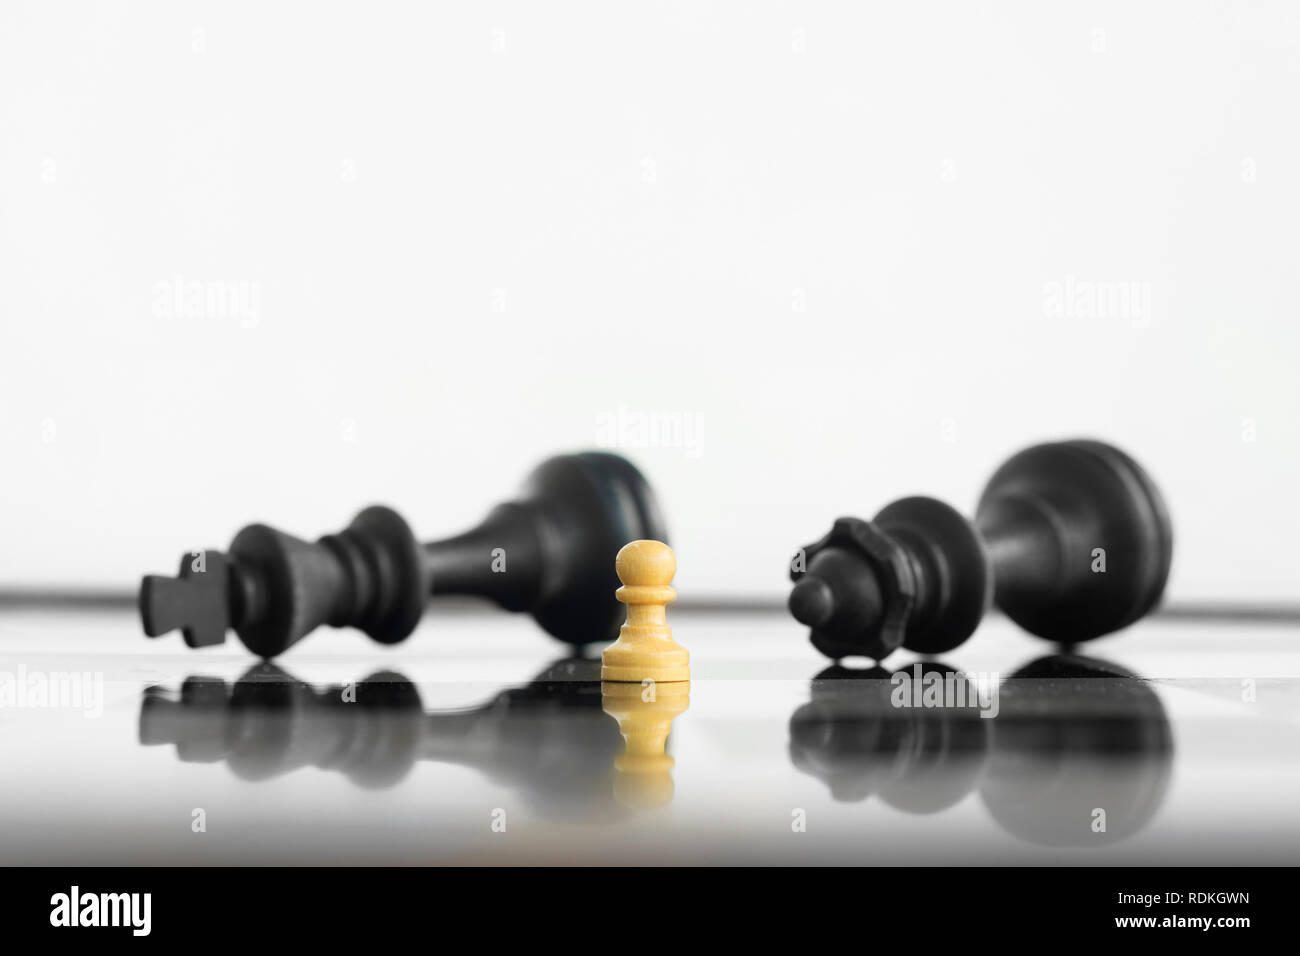 White peon standing victorious in front of a defeated King and Queen black chess army after confrontation. - Stock Image